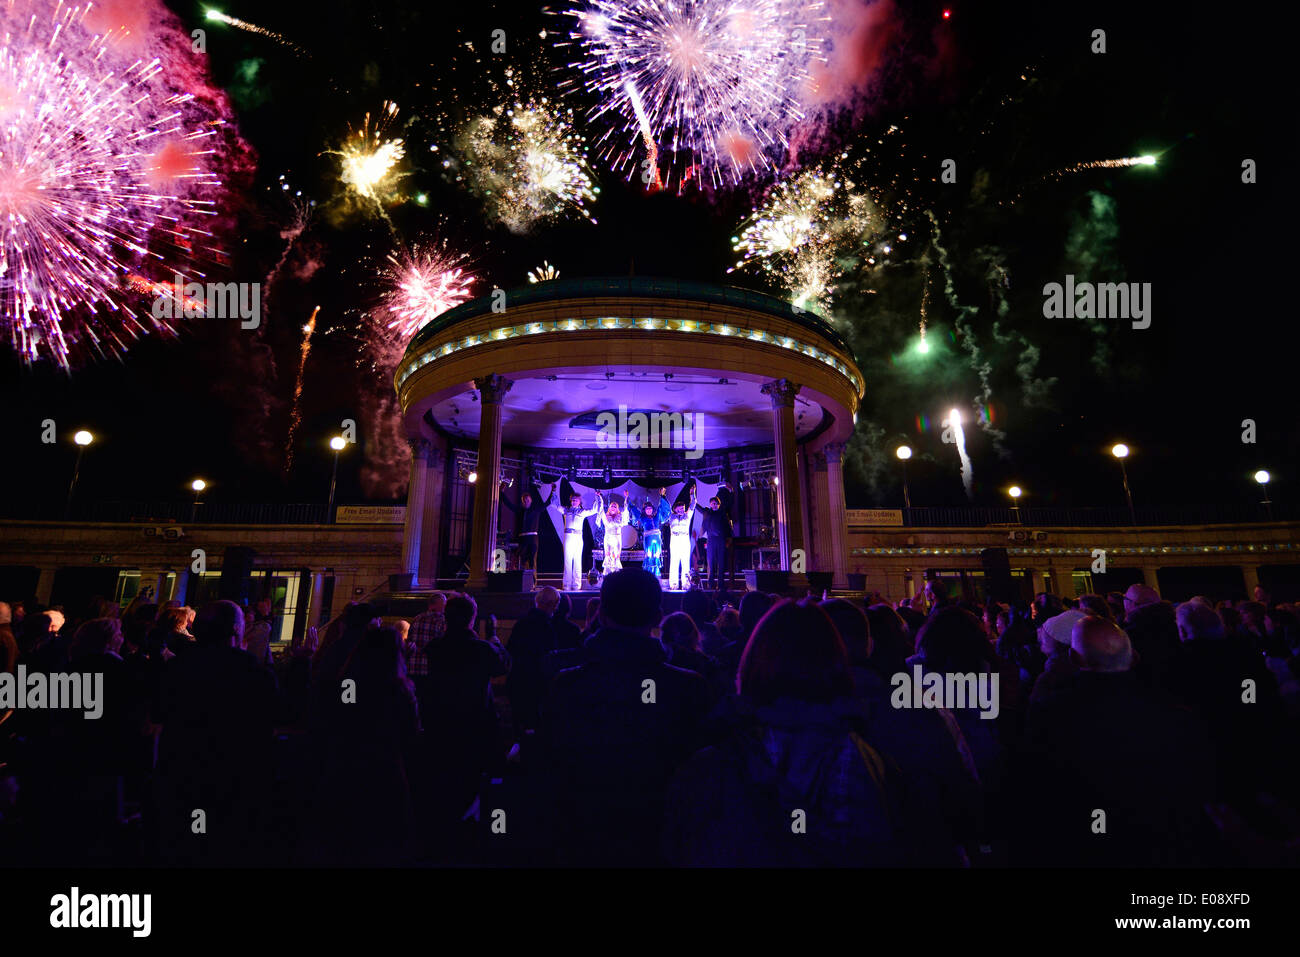 Abba tribute concert with fireworks. Eastbourne bandstand, East Sussex, England, UK - Stock Image